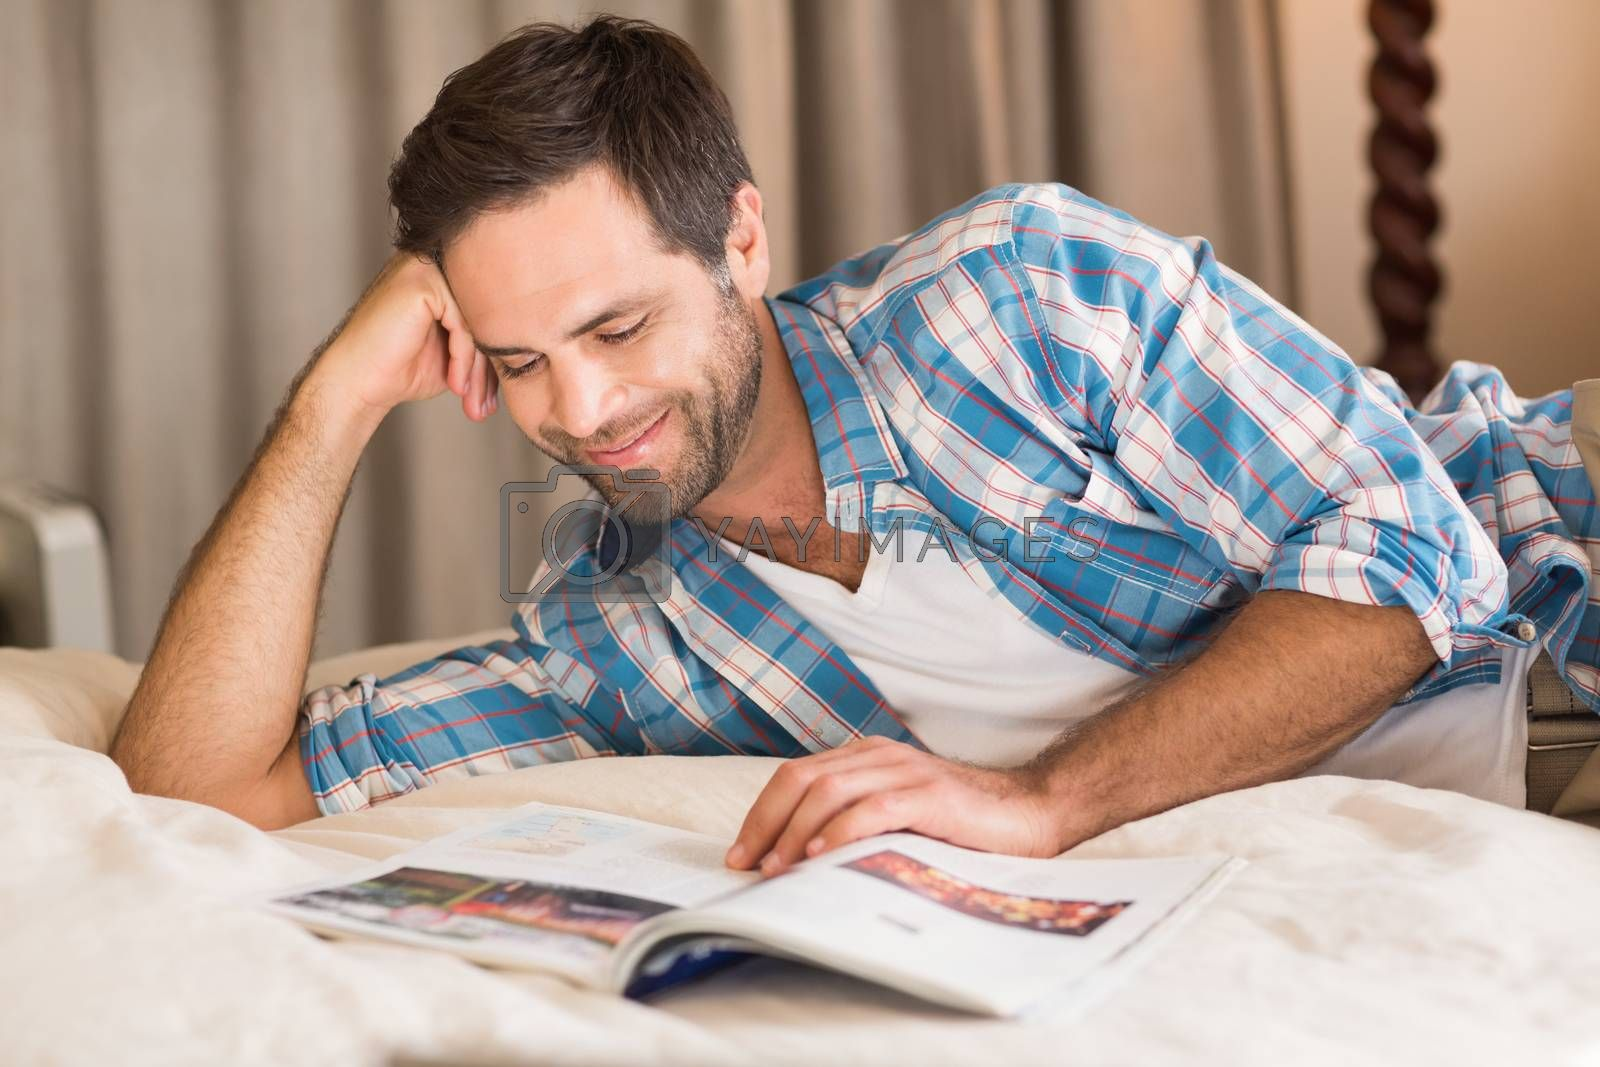 Handsome man relaxing on his bed reading magazine by Wavebreakmedia